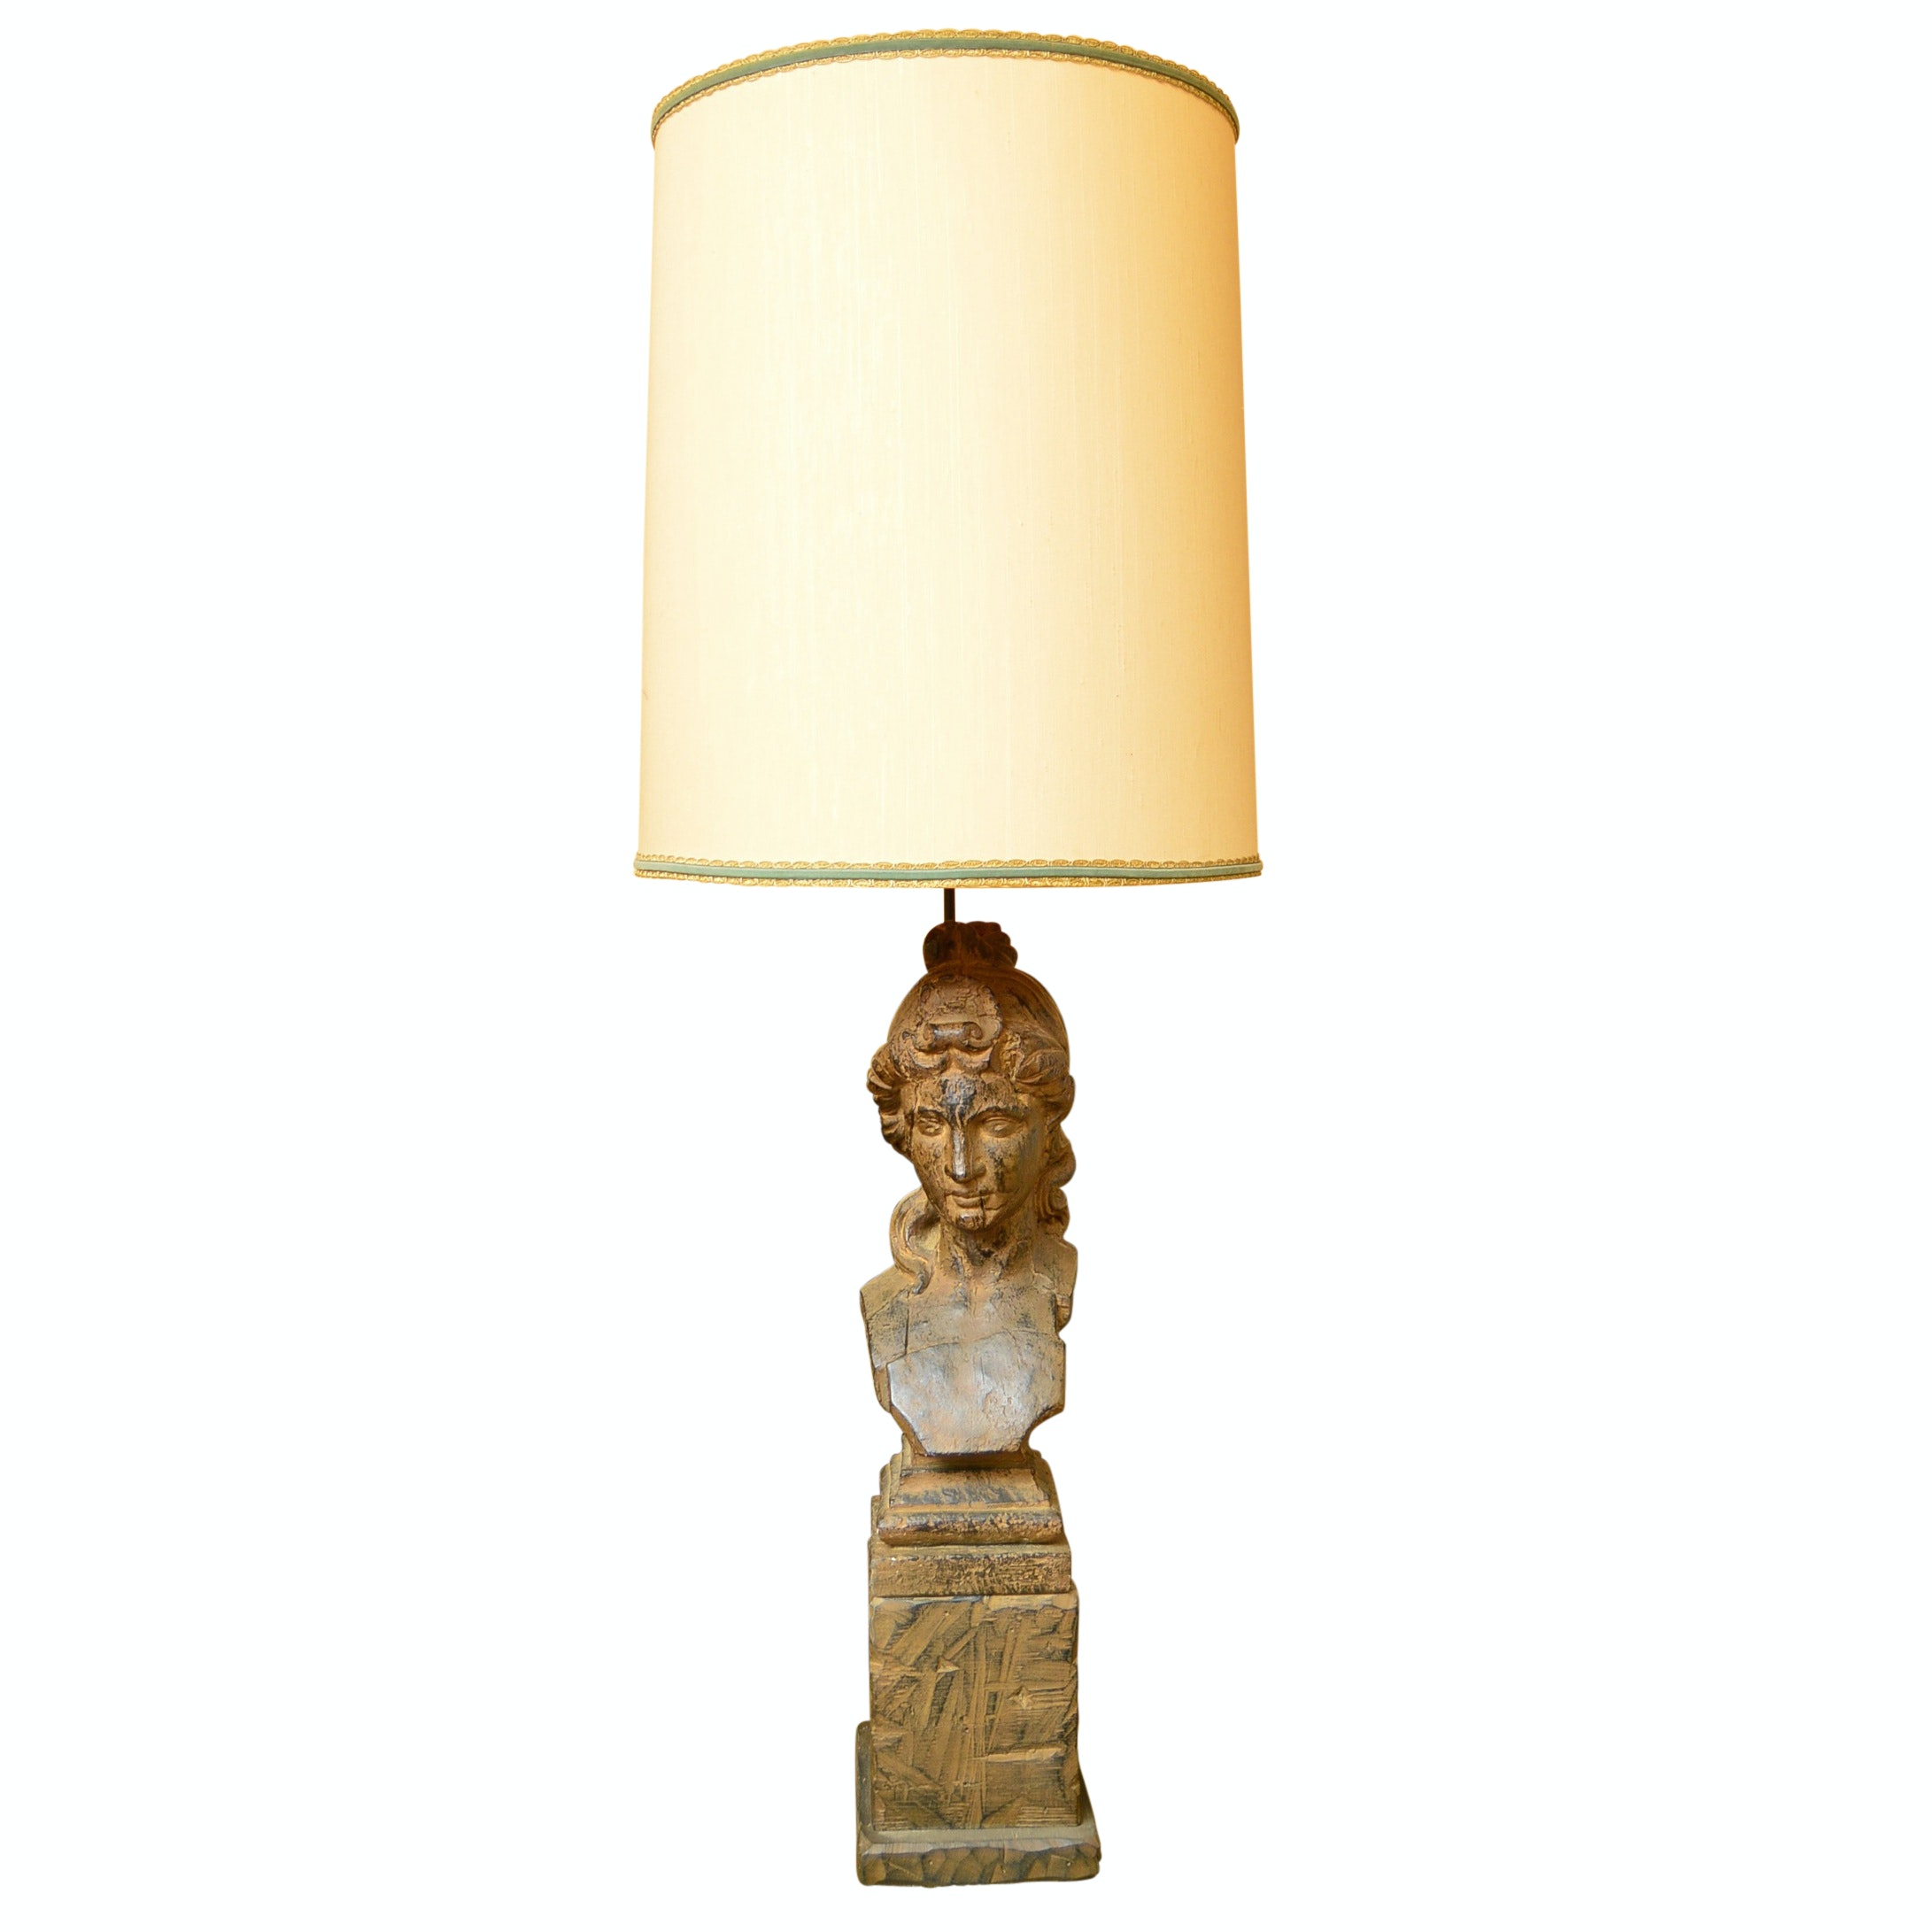 Chapman Mfg. Co. Carved Wood Figural Table Lamp